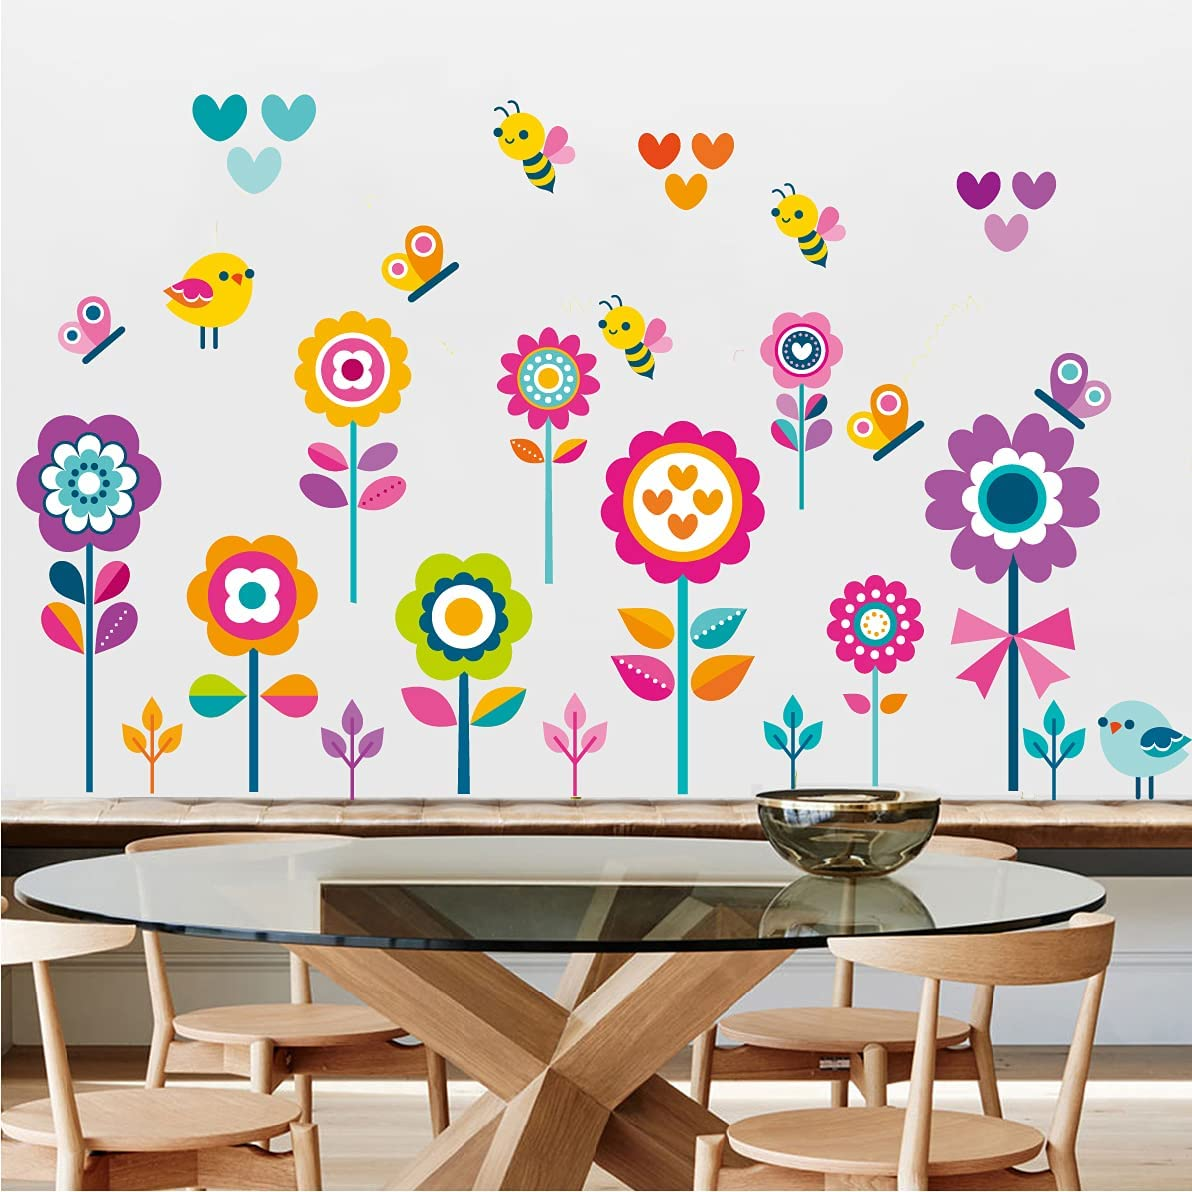 Garden Flowers Wall Decals Spring Floral Butterfly Bee Bird Wall Stickers Removable Peel and Stick Art Murals for Kids Room Nursery Classroom Kitchen Living Room Bedroom Bathroom Decor(Floral)